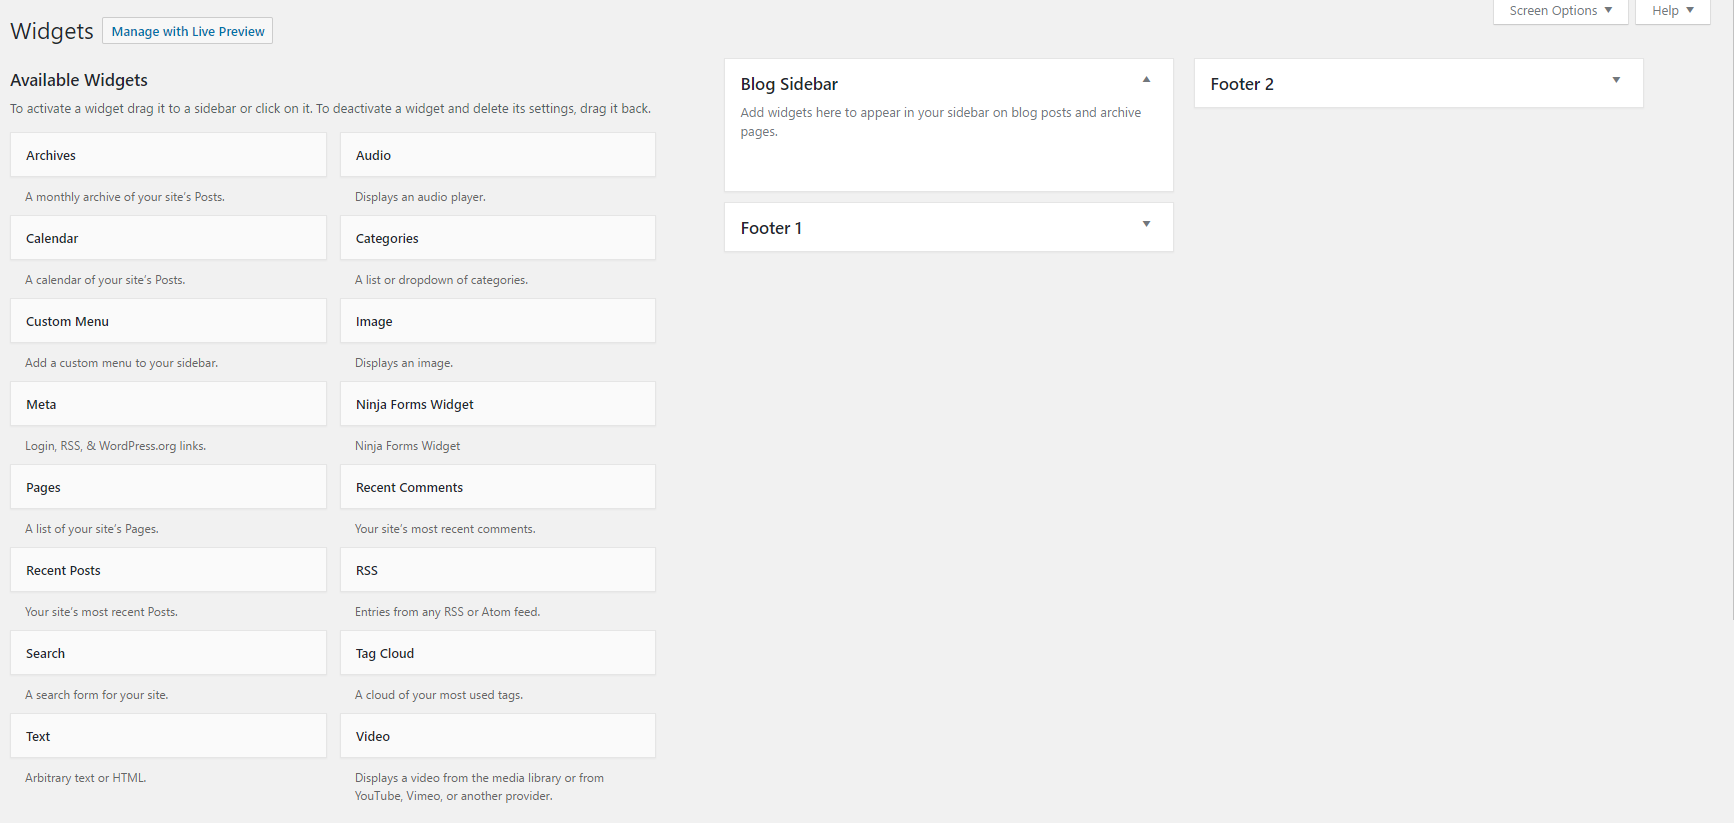 An image of the WordPress widgets page